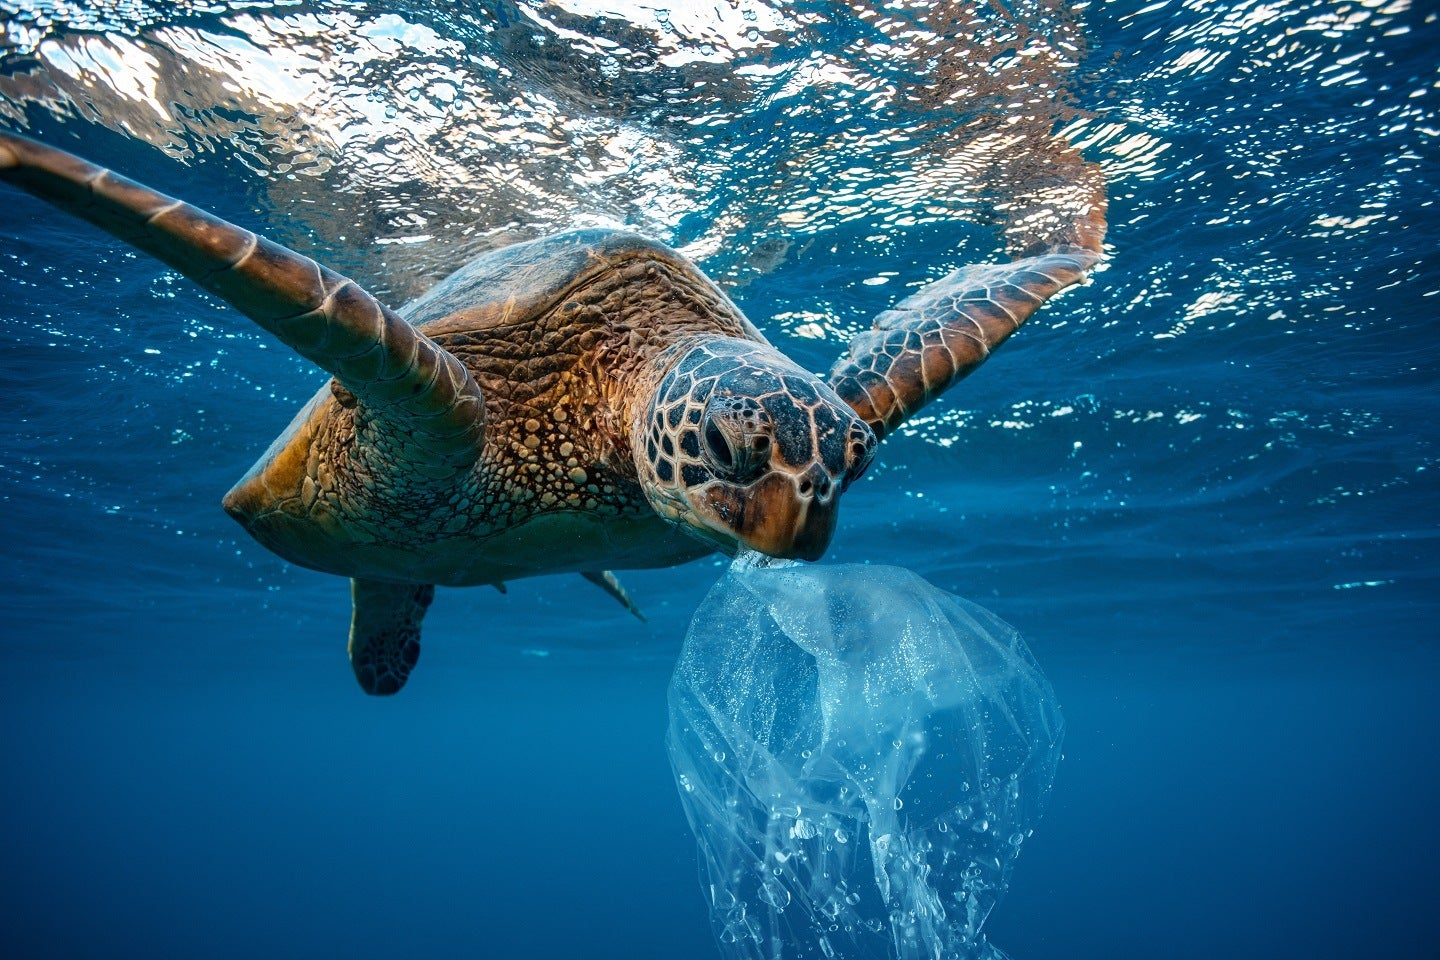 turtle in ocean with plastic bag